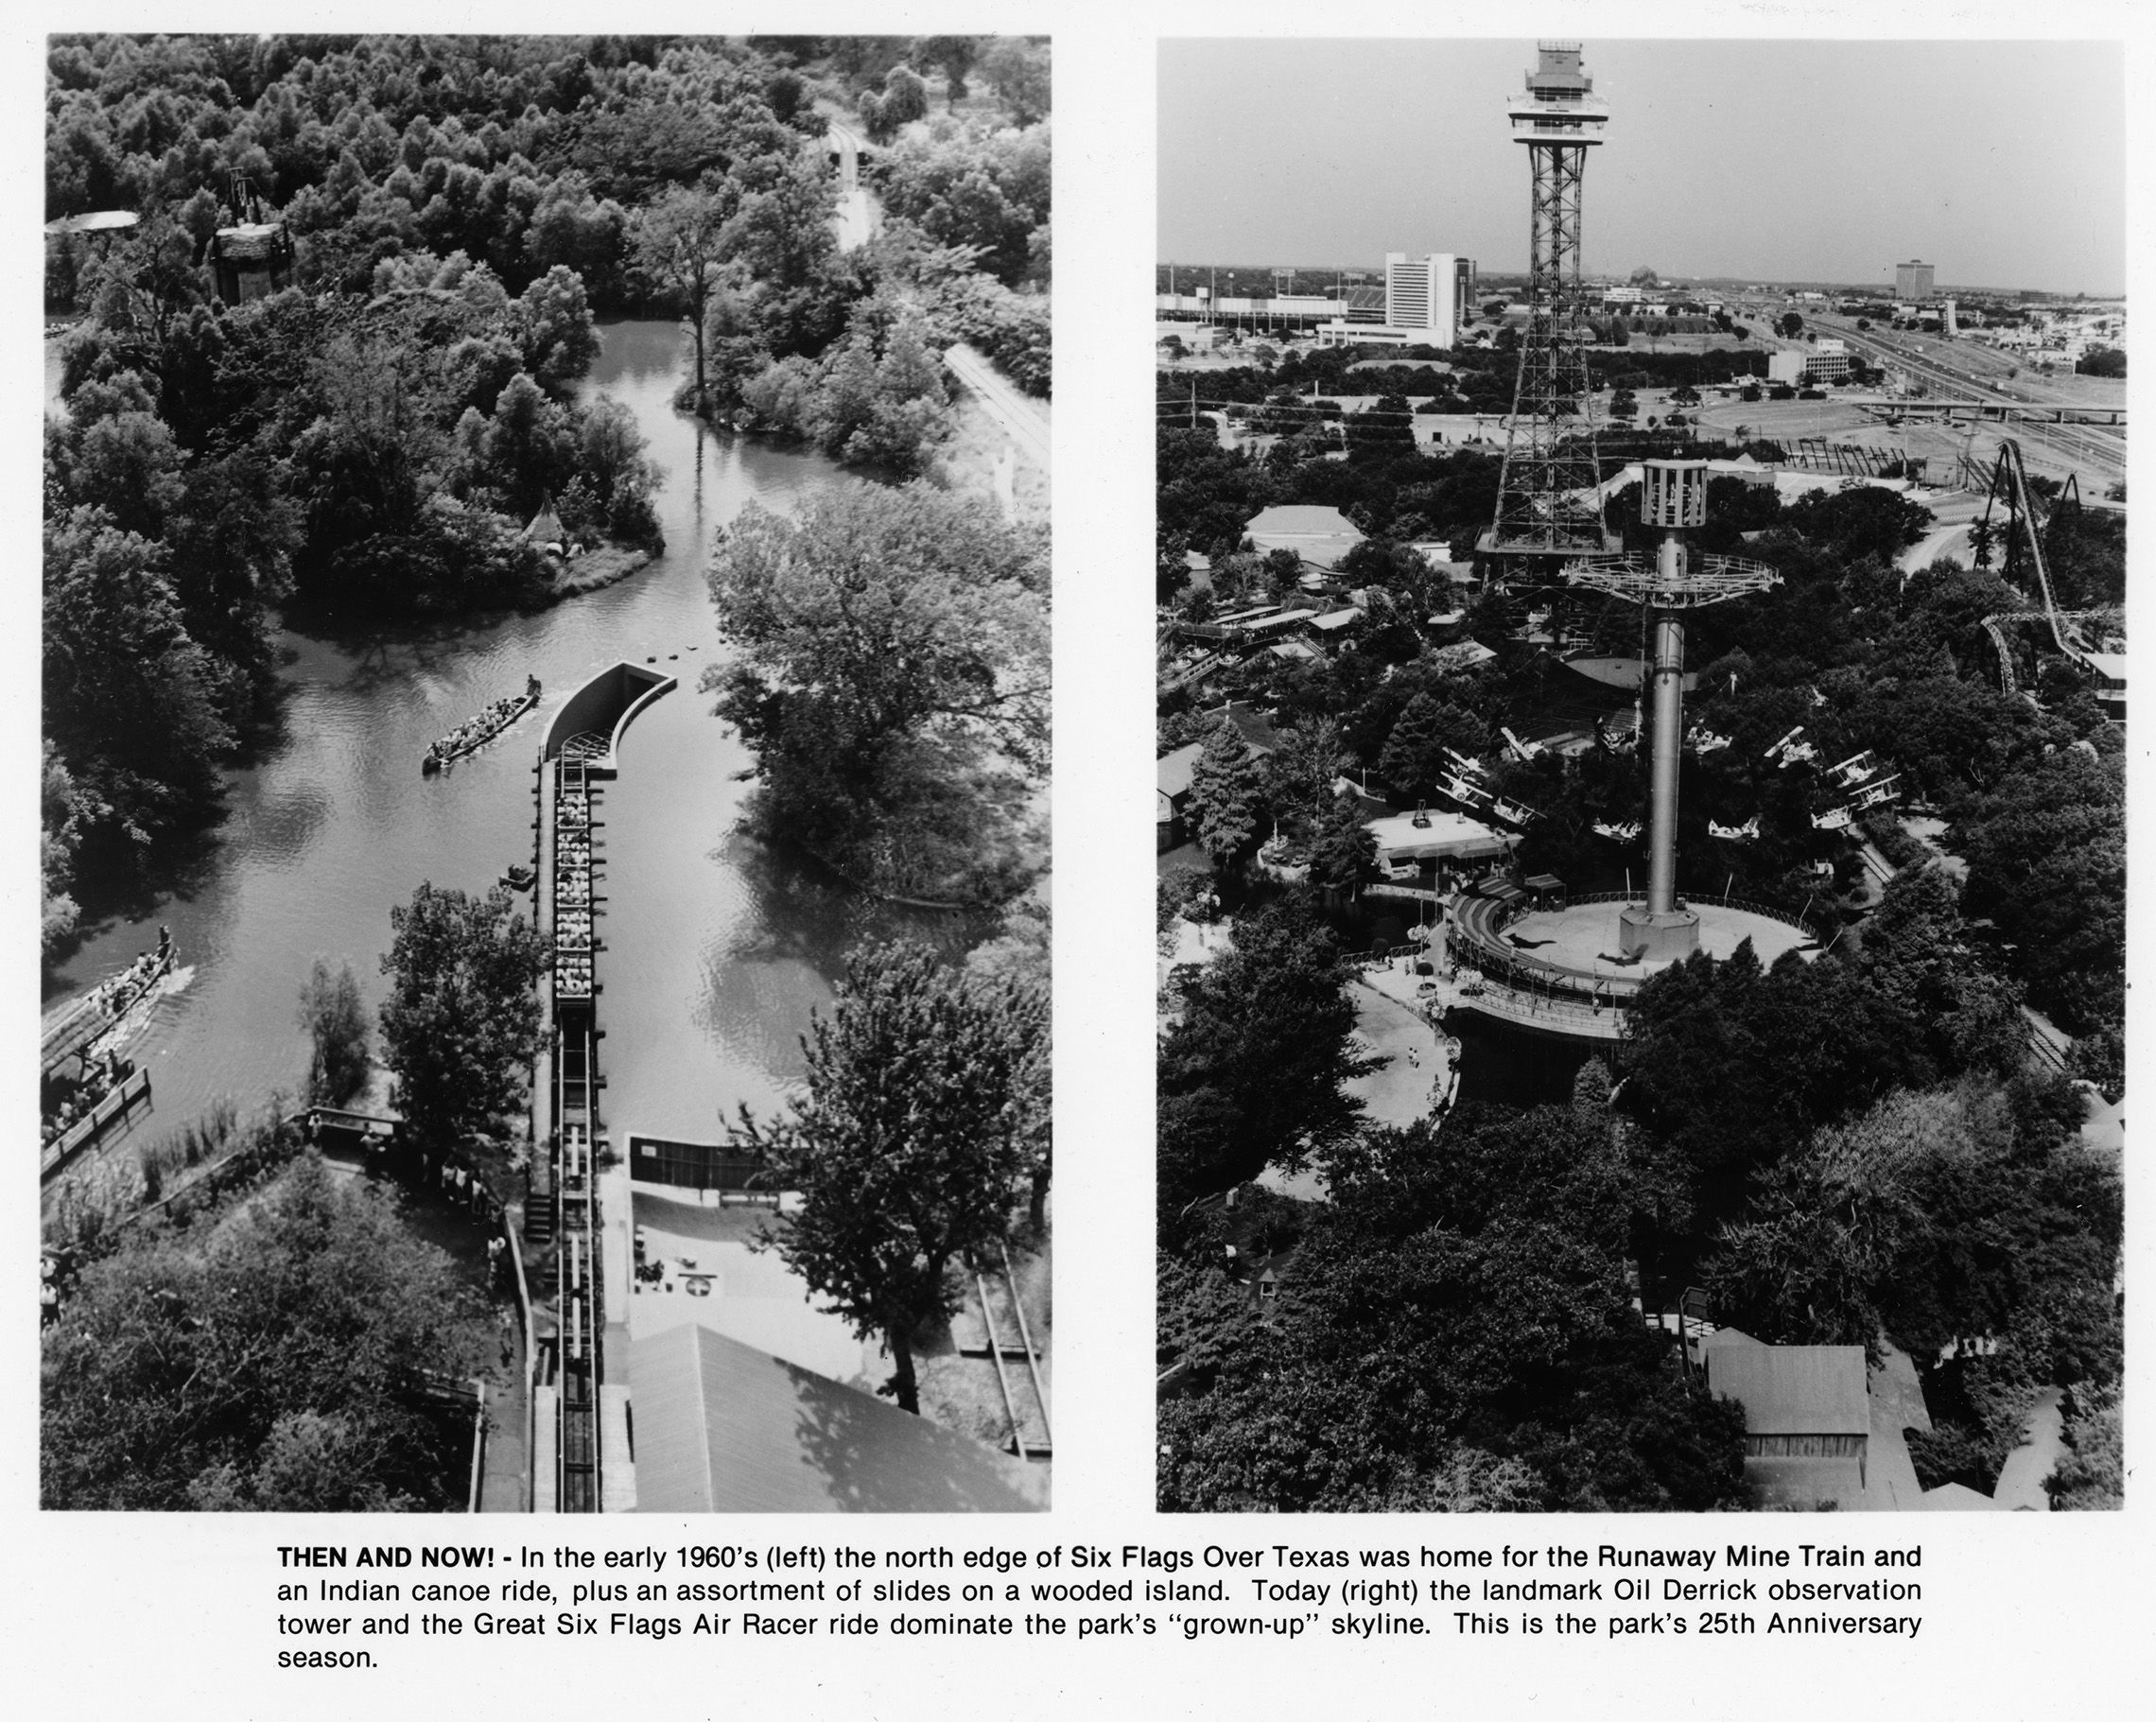 Six Flags Over Texas Then And Now Runaway Mine Train And Canoe Ride In 1960s Oil Derrick Observation Tower And Air Six Flags Over Texas Six Flags Arlington